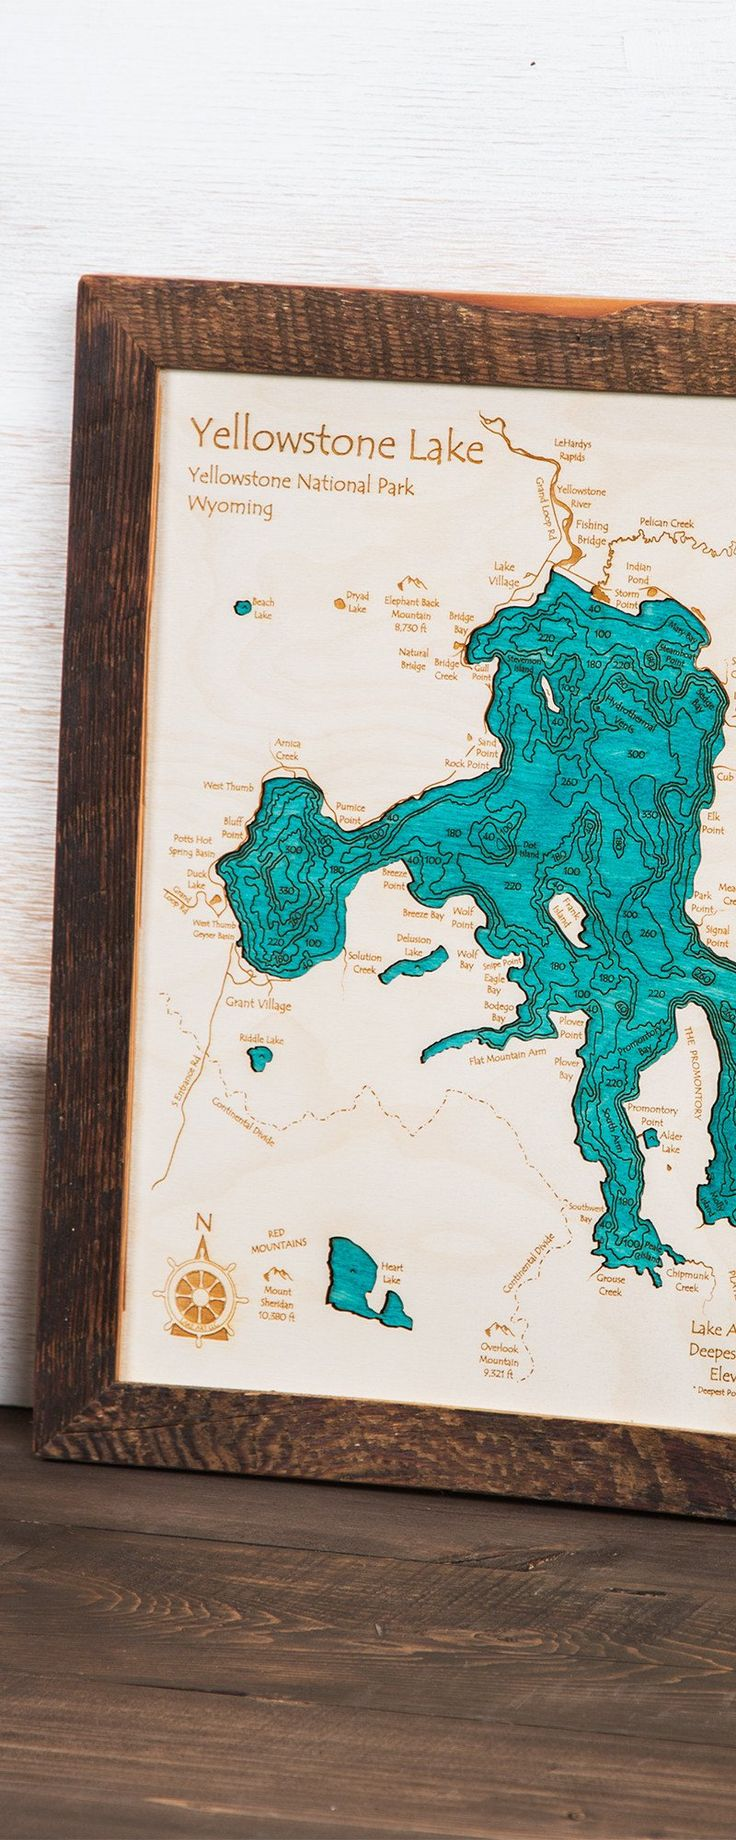 San Francisco Air Quality Map%0A Large Lake Wall Art by Lake Art